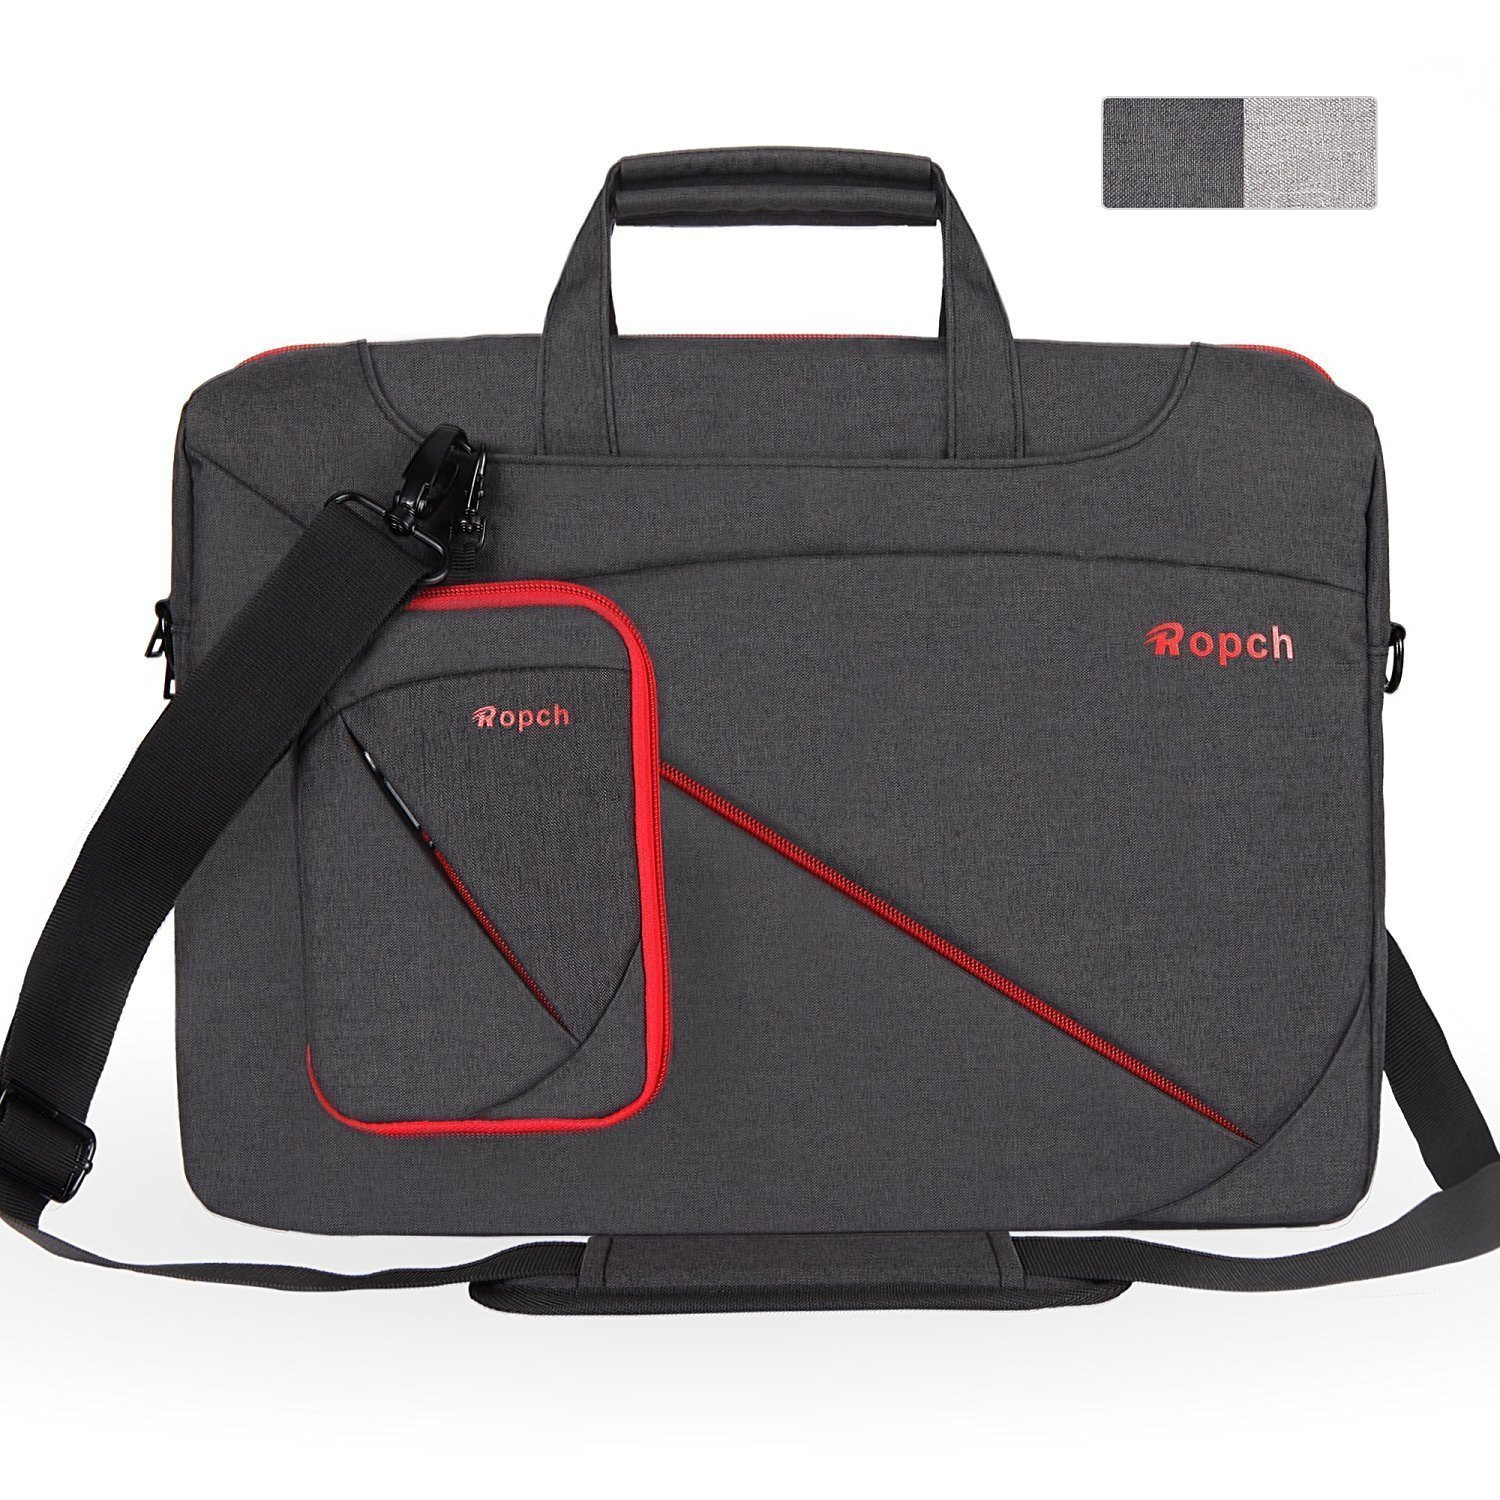 Ropch 17.3 Inch Laptop Bag Universal Computer Messenger Bag, Nylon Water Resistant Business Briefcase with Handles, Shoulder Strap Carrying Case for Tablet/Notebook - Black